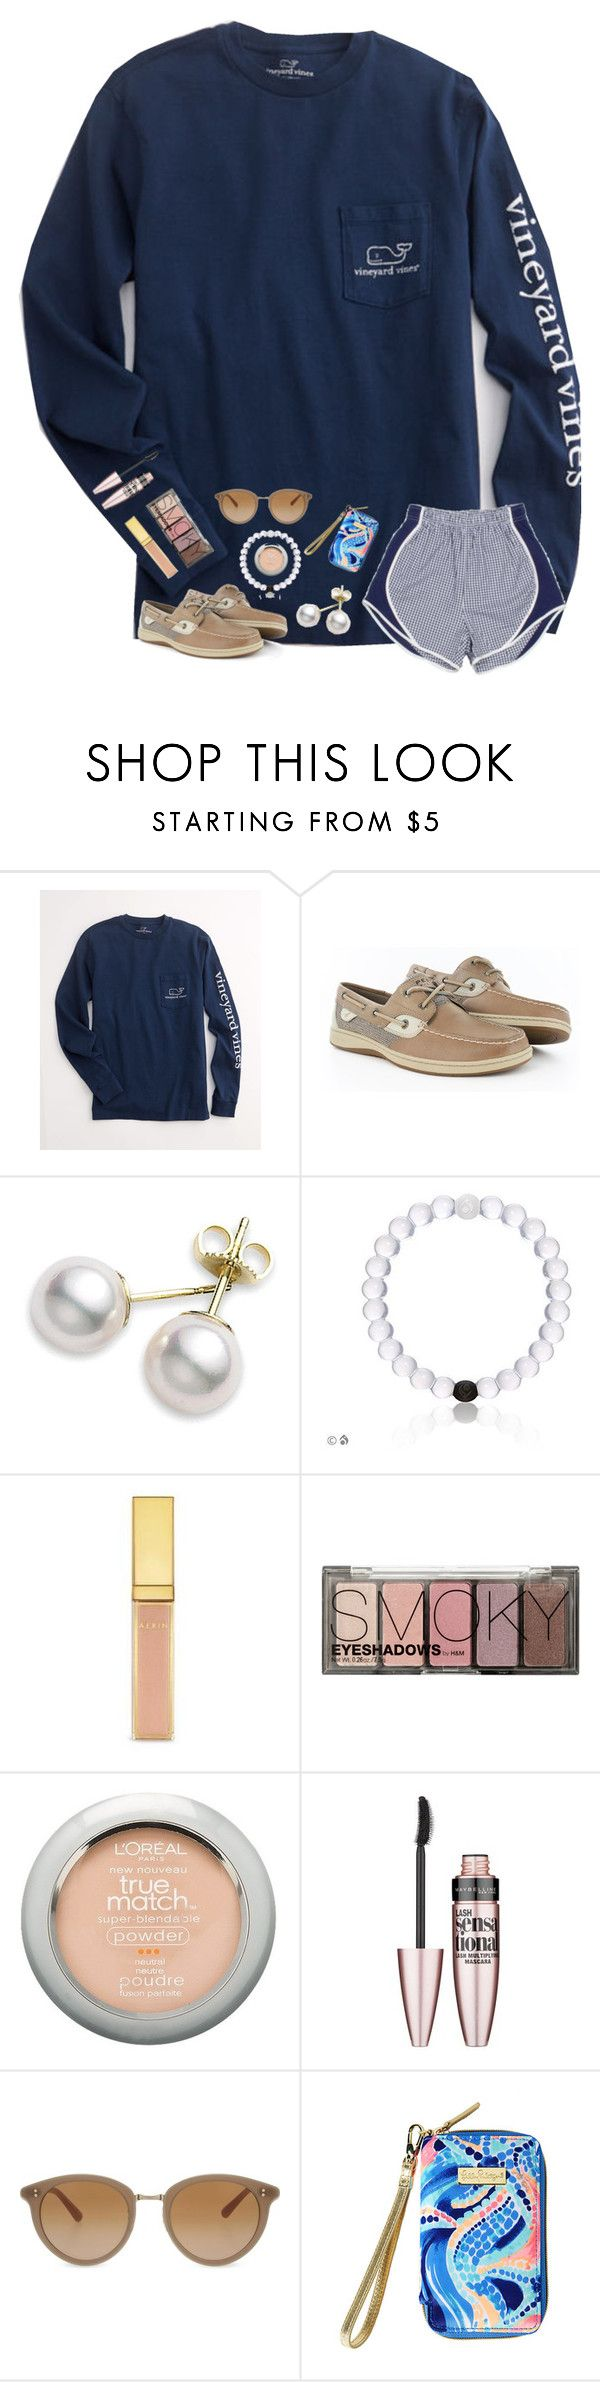 """Happy Labor Day "" by mmprep ❤ liked on Polyvore featuring Vineyard Vines, Sperry, Mikimoto, H&M, L'Oréal Paris, Maybelline, Oliver Peoples and Lilly Pulitzer"